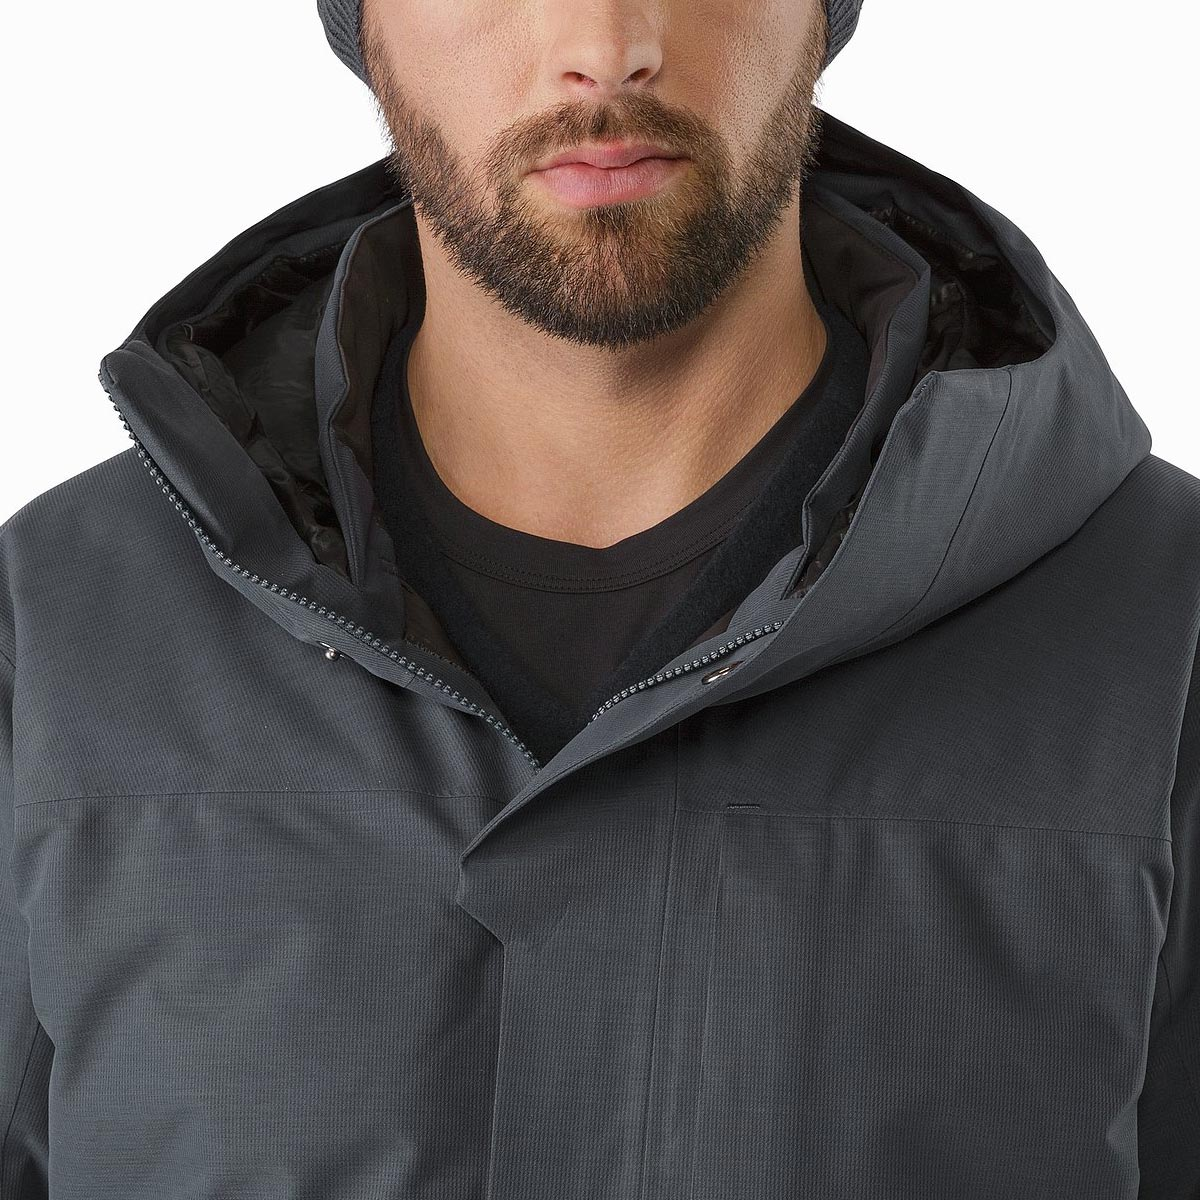 c01a4a85a35 Therme Parka, men's, discontinued Fall 2018 colors